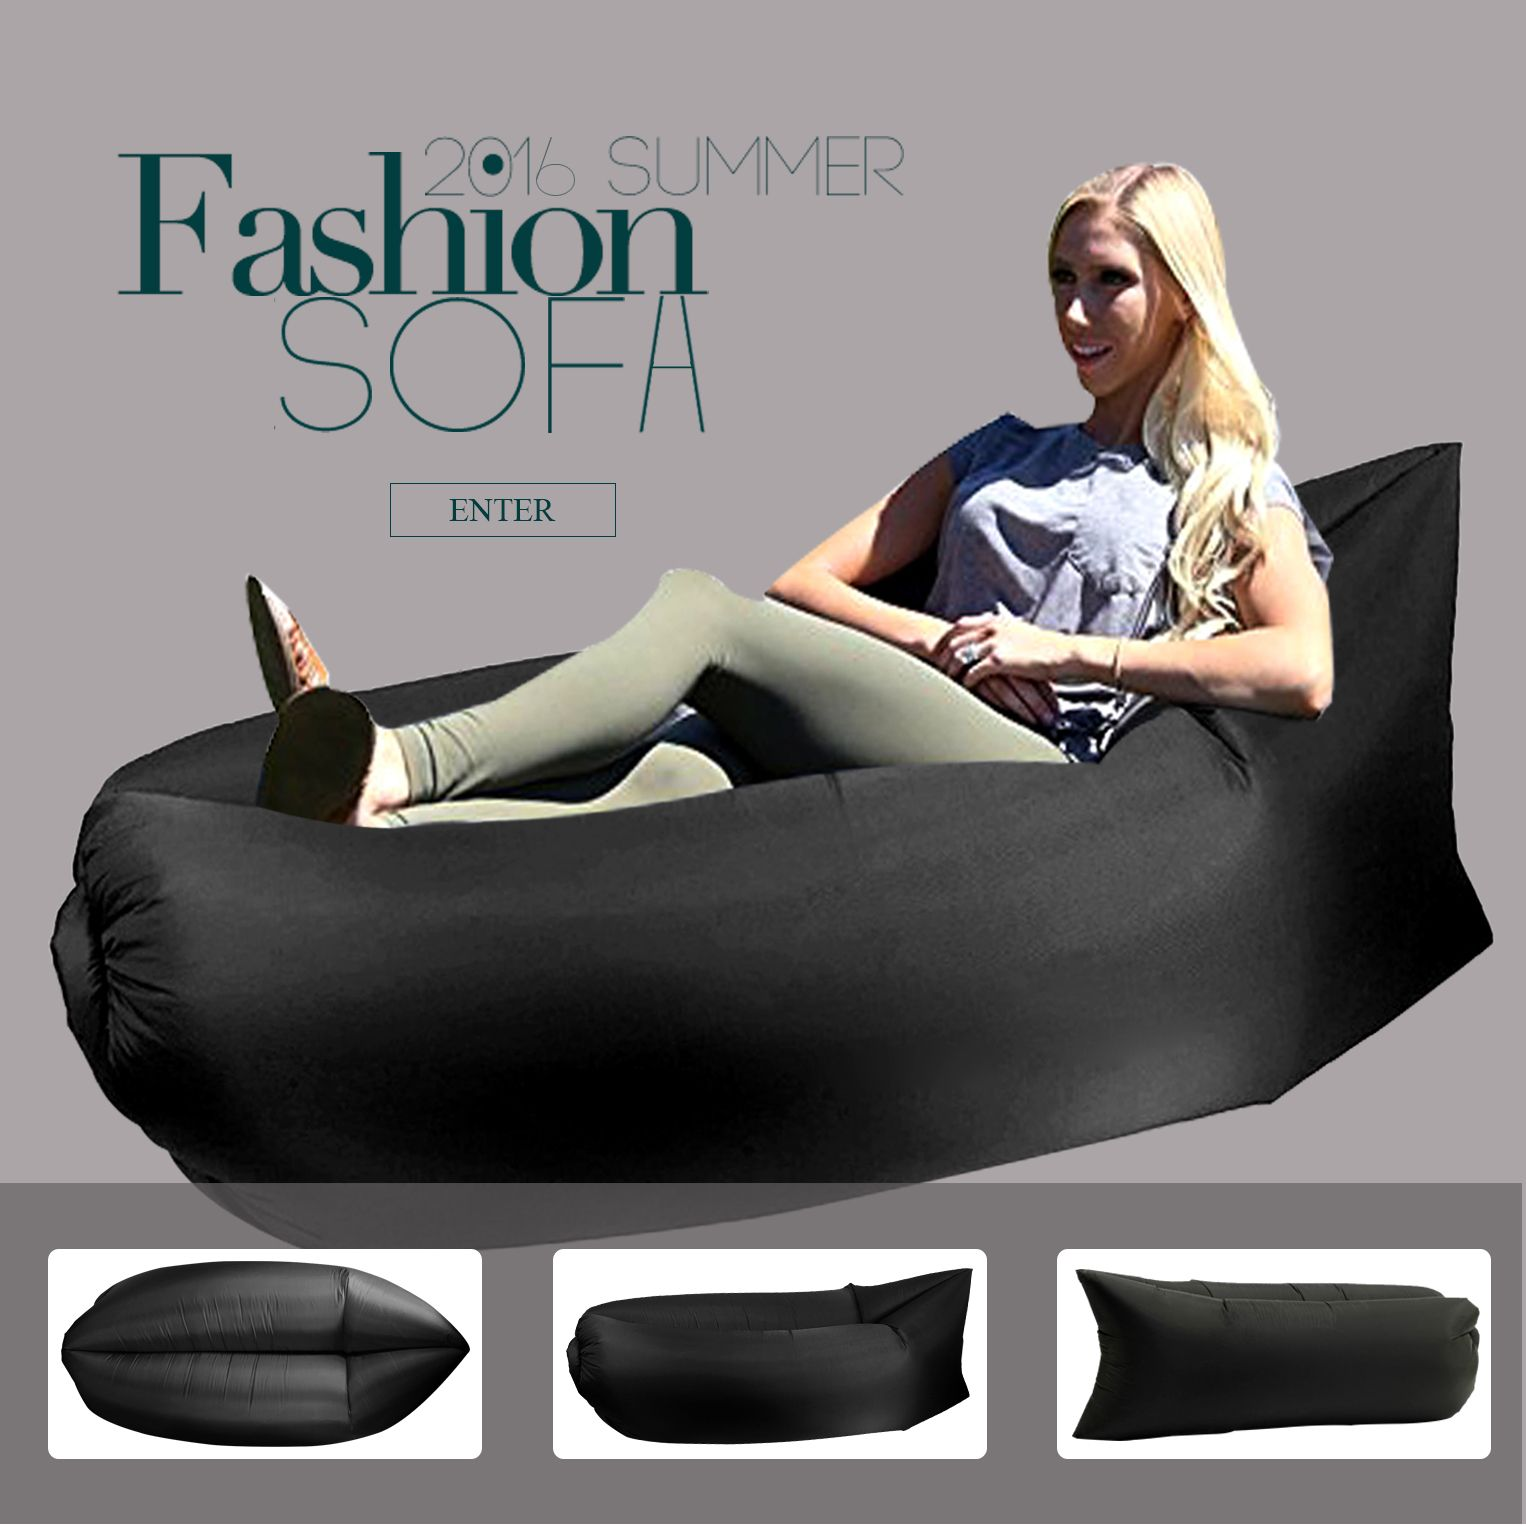 Leather Sofa Ebeautyday Fashion Hangout Outdoor Indoor Lounger Fast Inflatable Couch Air Bed Sofa Chair Inflating